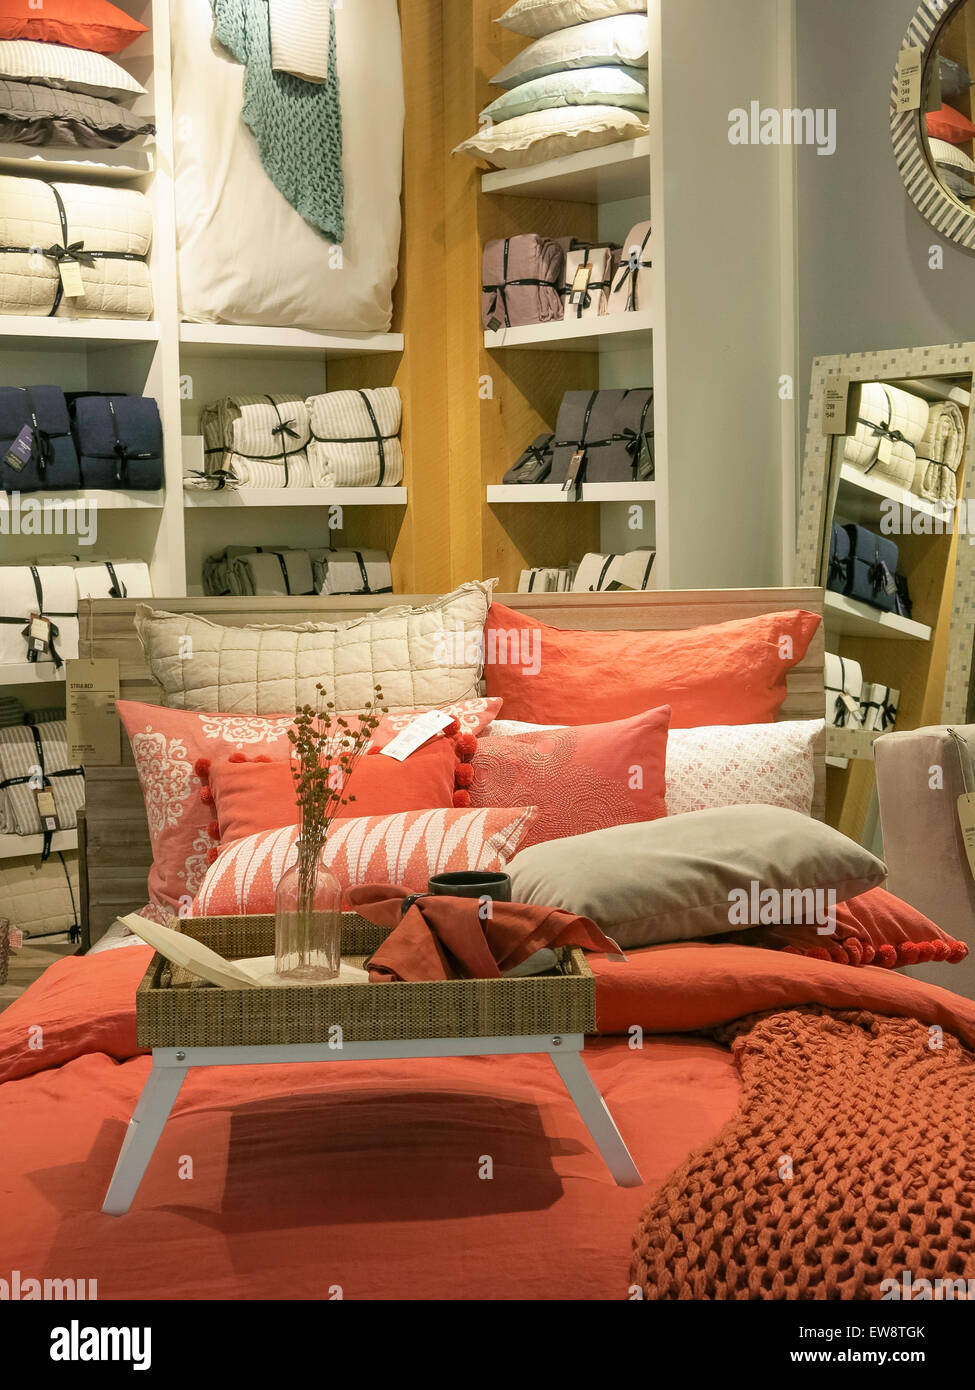 West Elm Home Furnishings Store, NYC, USA